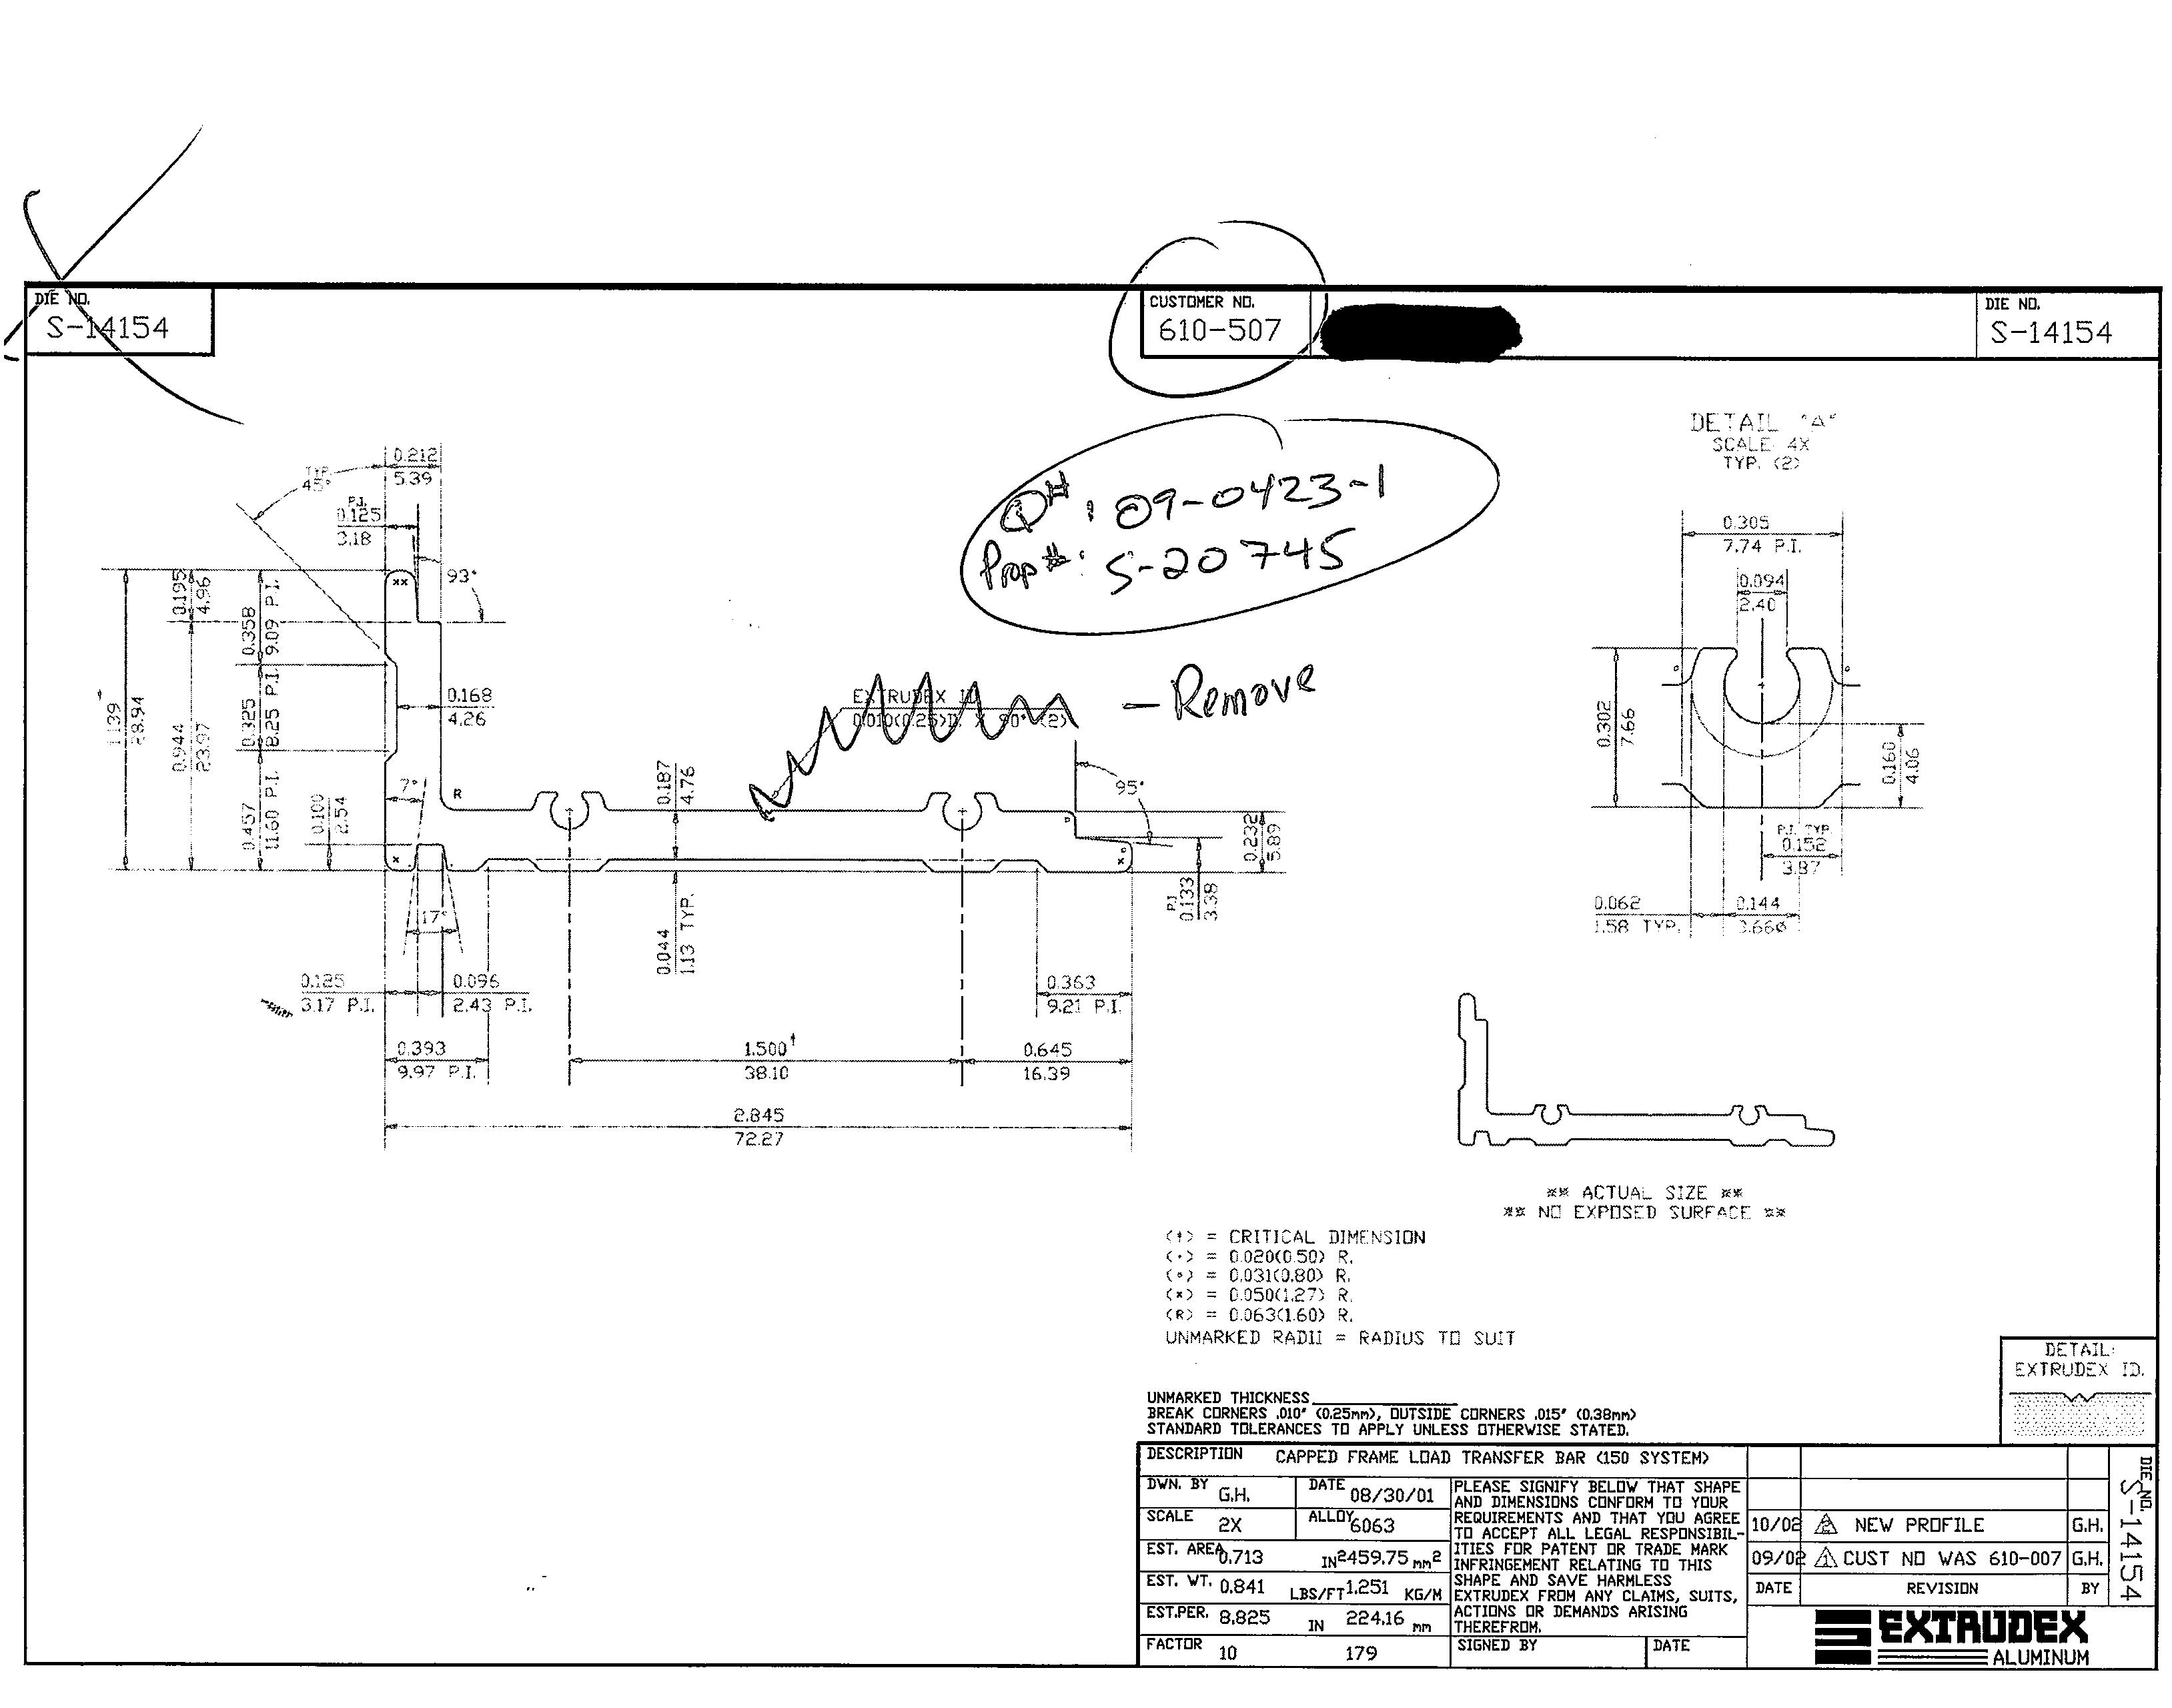 Cad Drawing Format Draw Circuit Diagram Free Architectural Drafting Service India Autocad